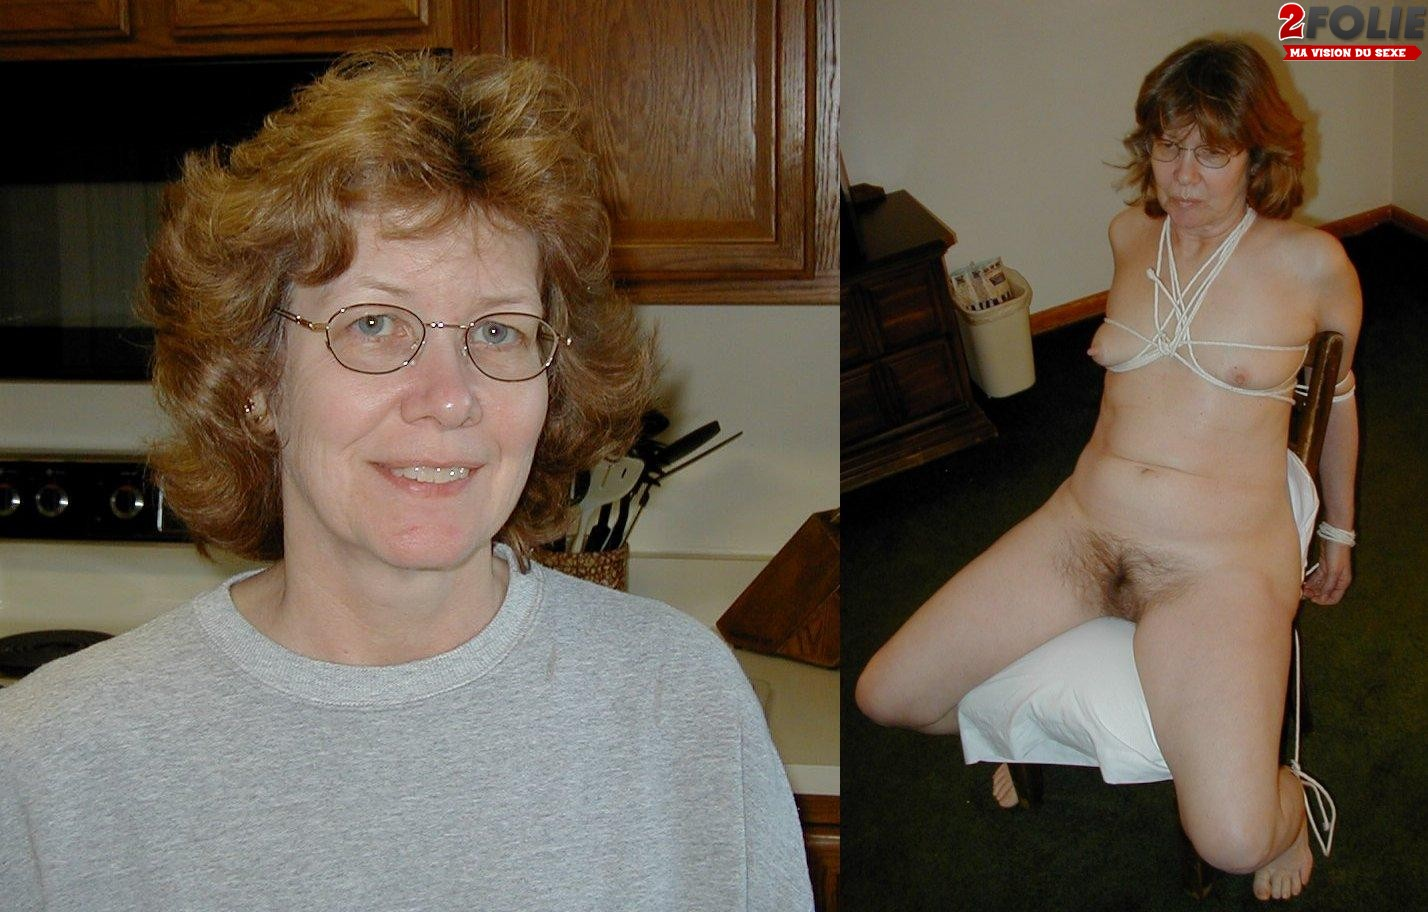 Amateur slutwife shared with good friends 1